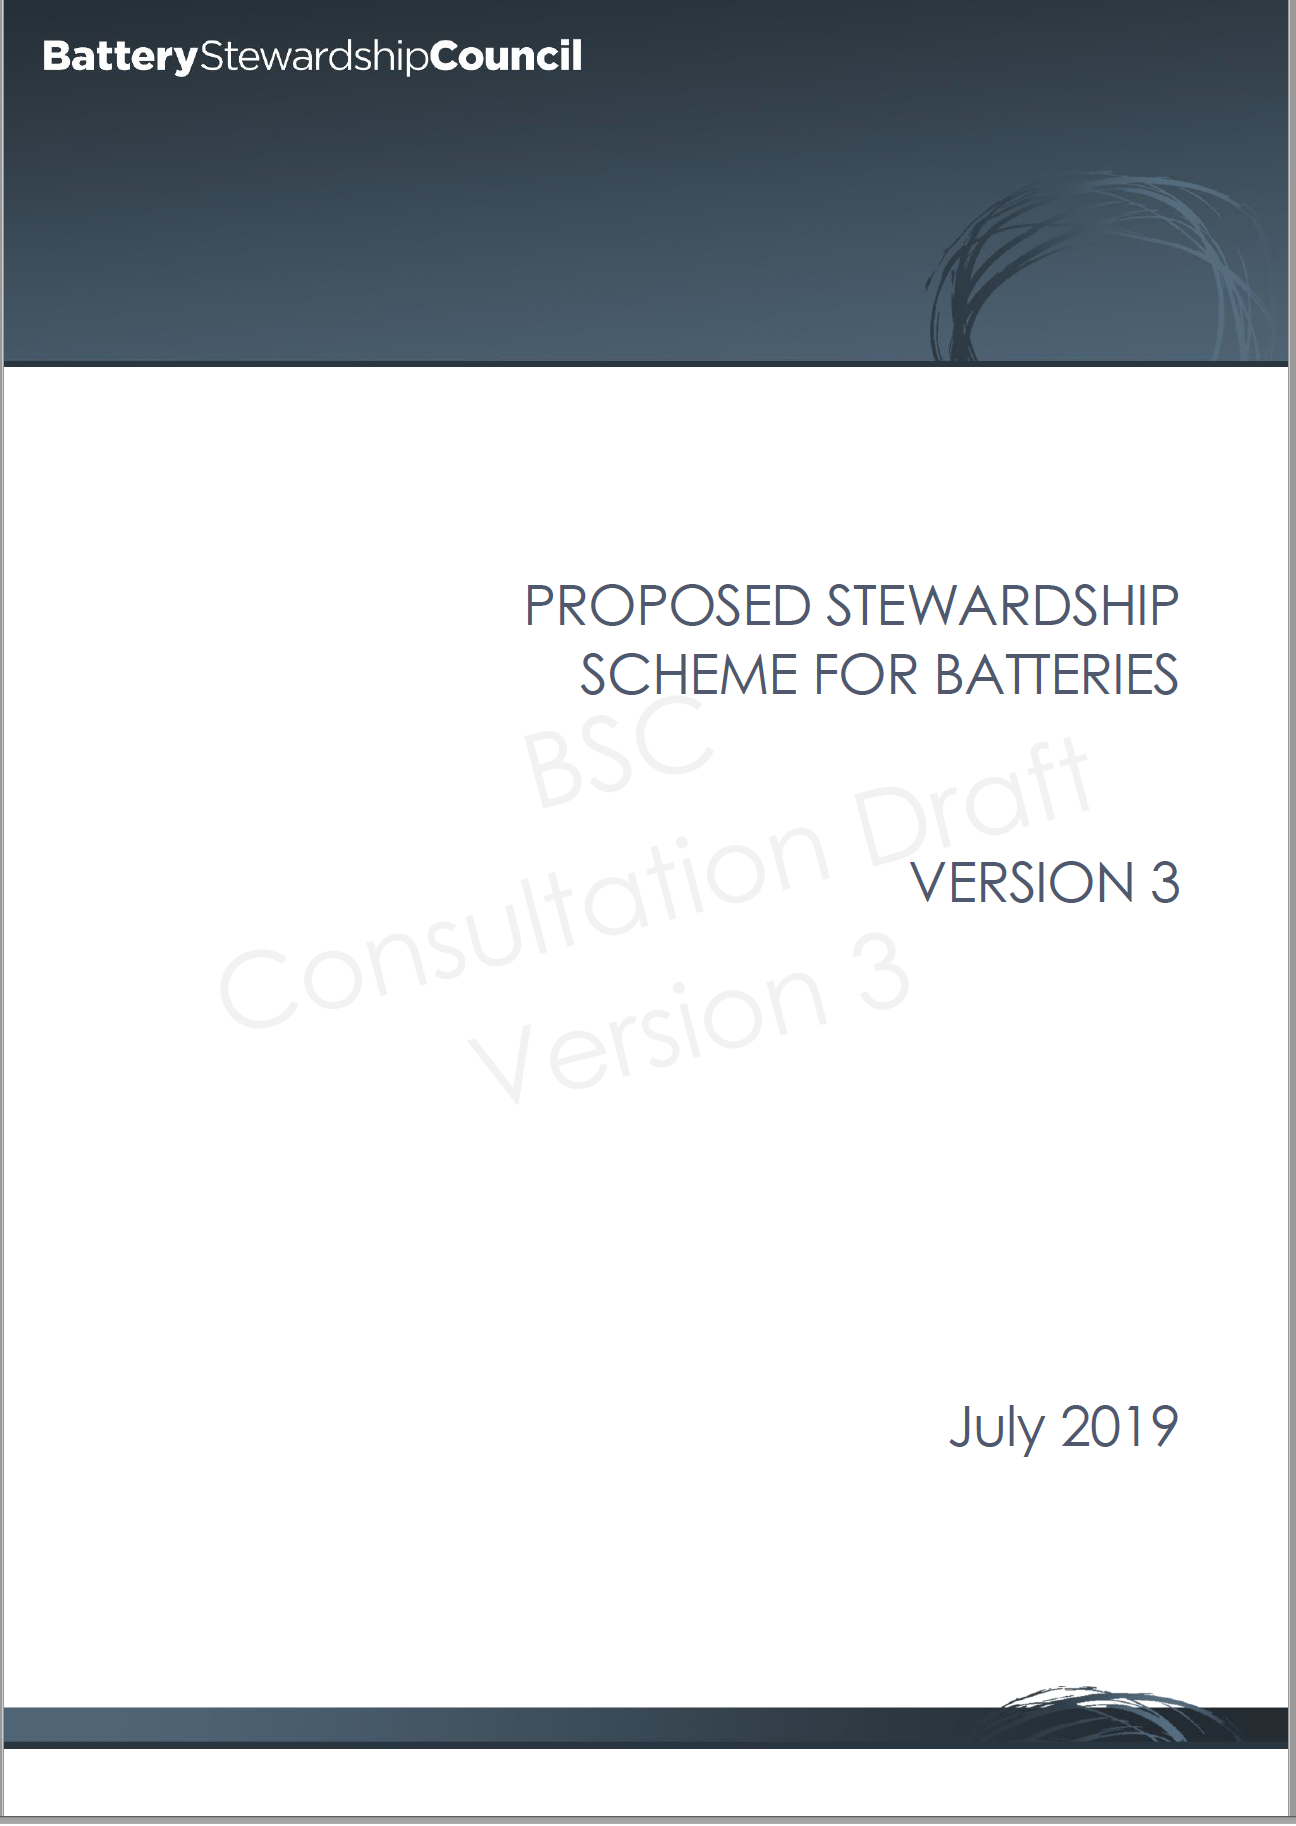 Proposed <strong>Battery Stewardship</strong> Scheme Consultation Draft V3